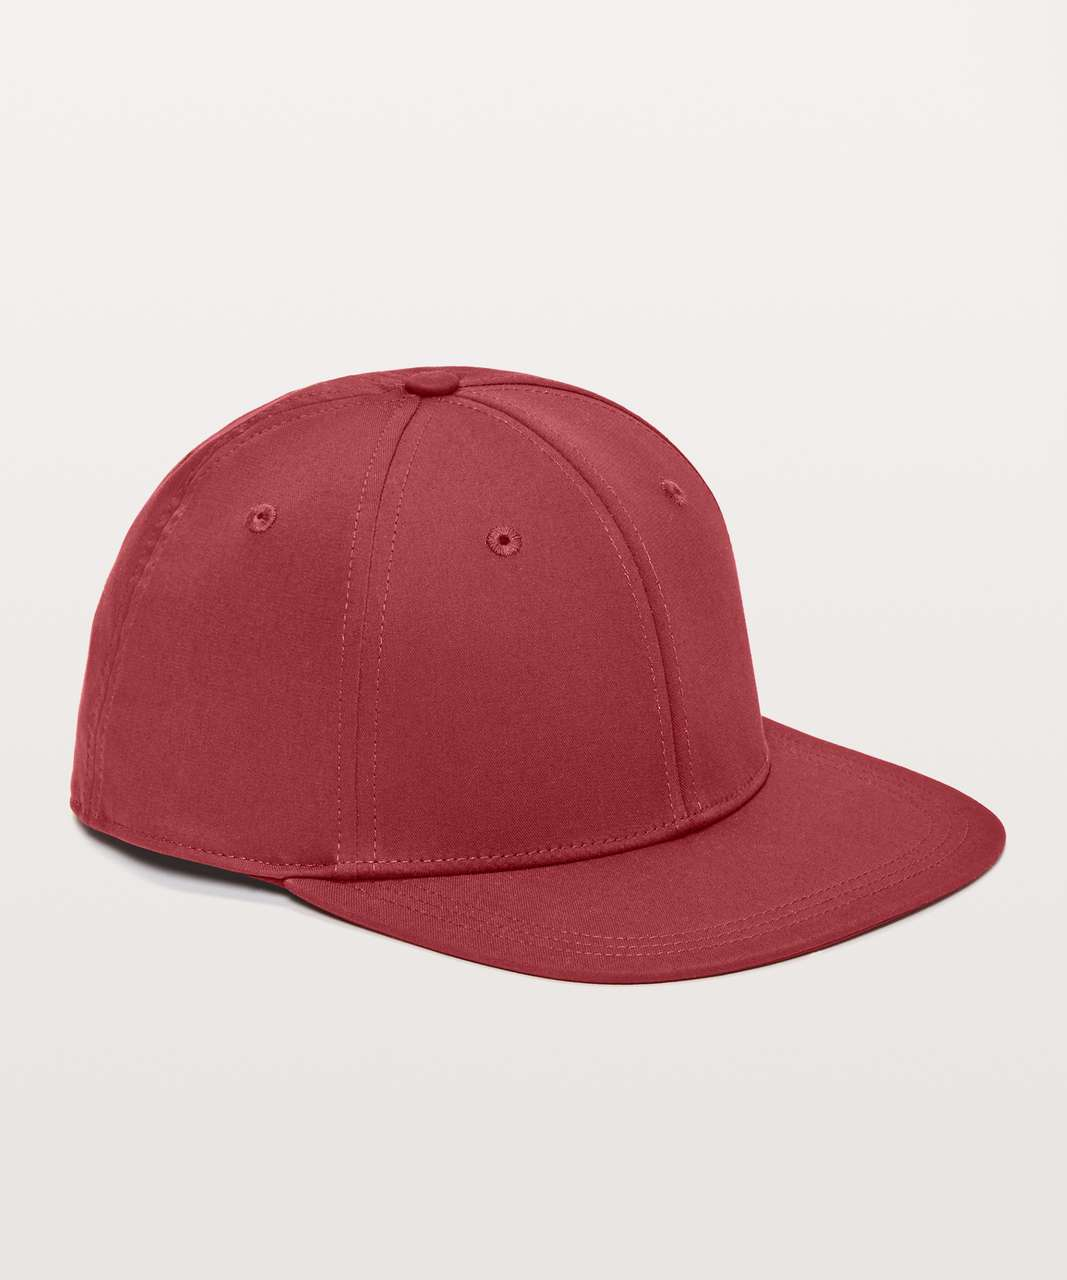 c8ad08f5 Lululemon On The Fly Ball Cap - Oxblood - lulu fanatics